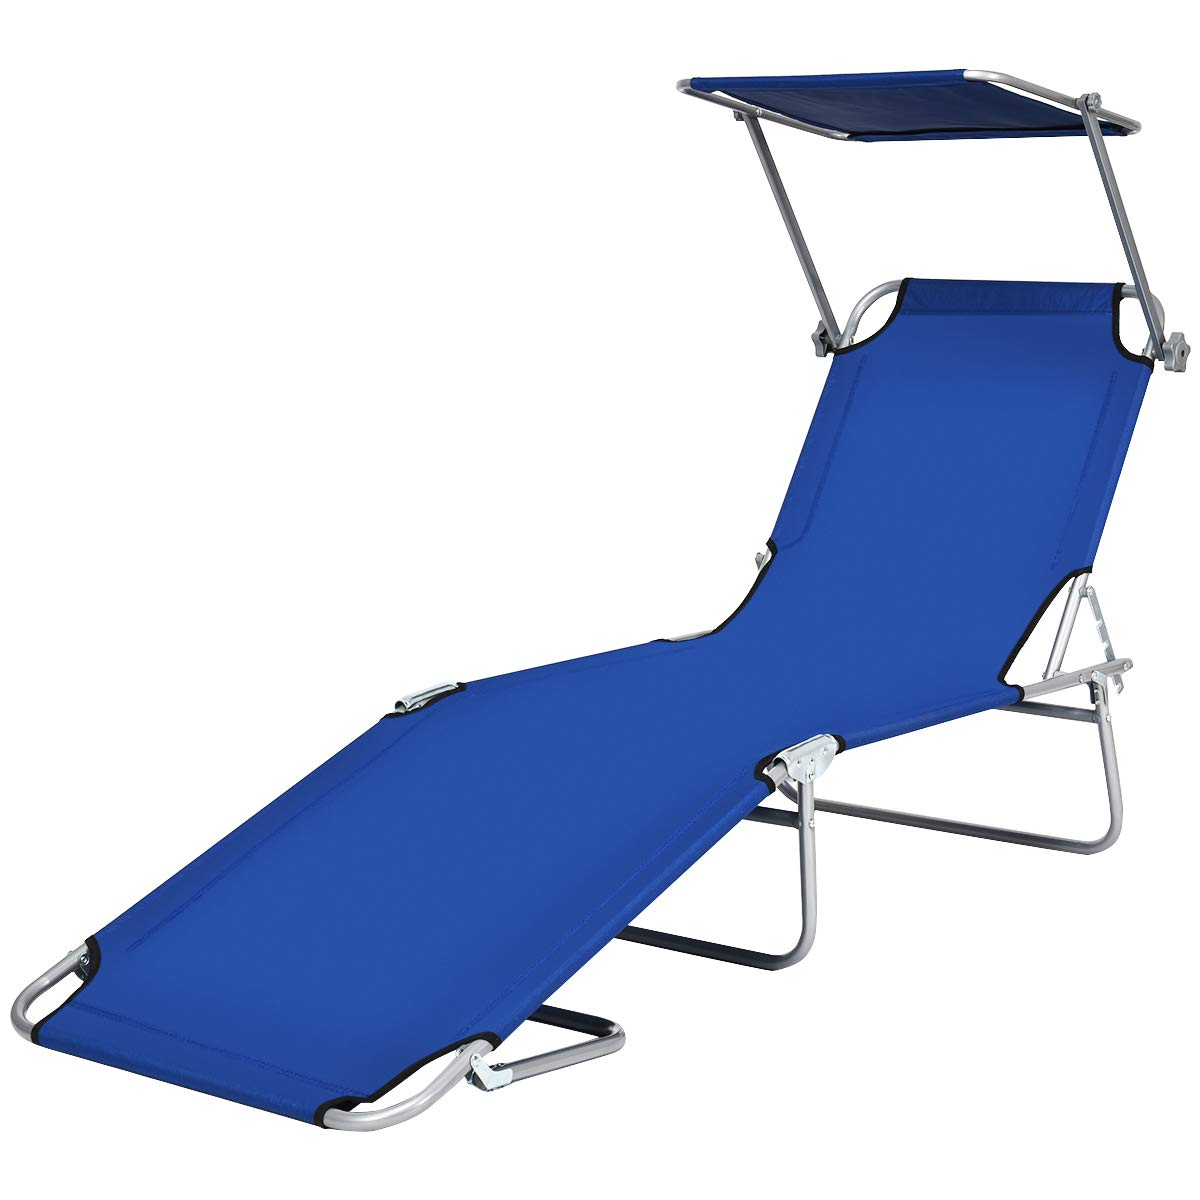 Goplus Folding Chaise Lounge Chair Adjustable Outdoor Recliner w/Detachable Canopy for Pool Lawn Yard Patio Beach (Blue) by Goplus